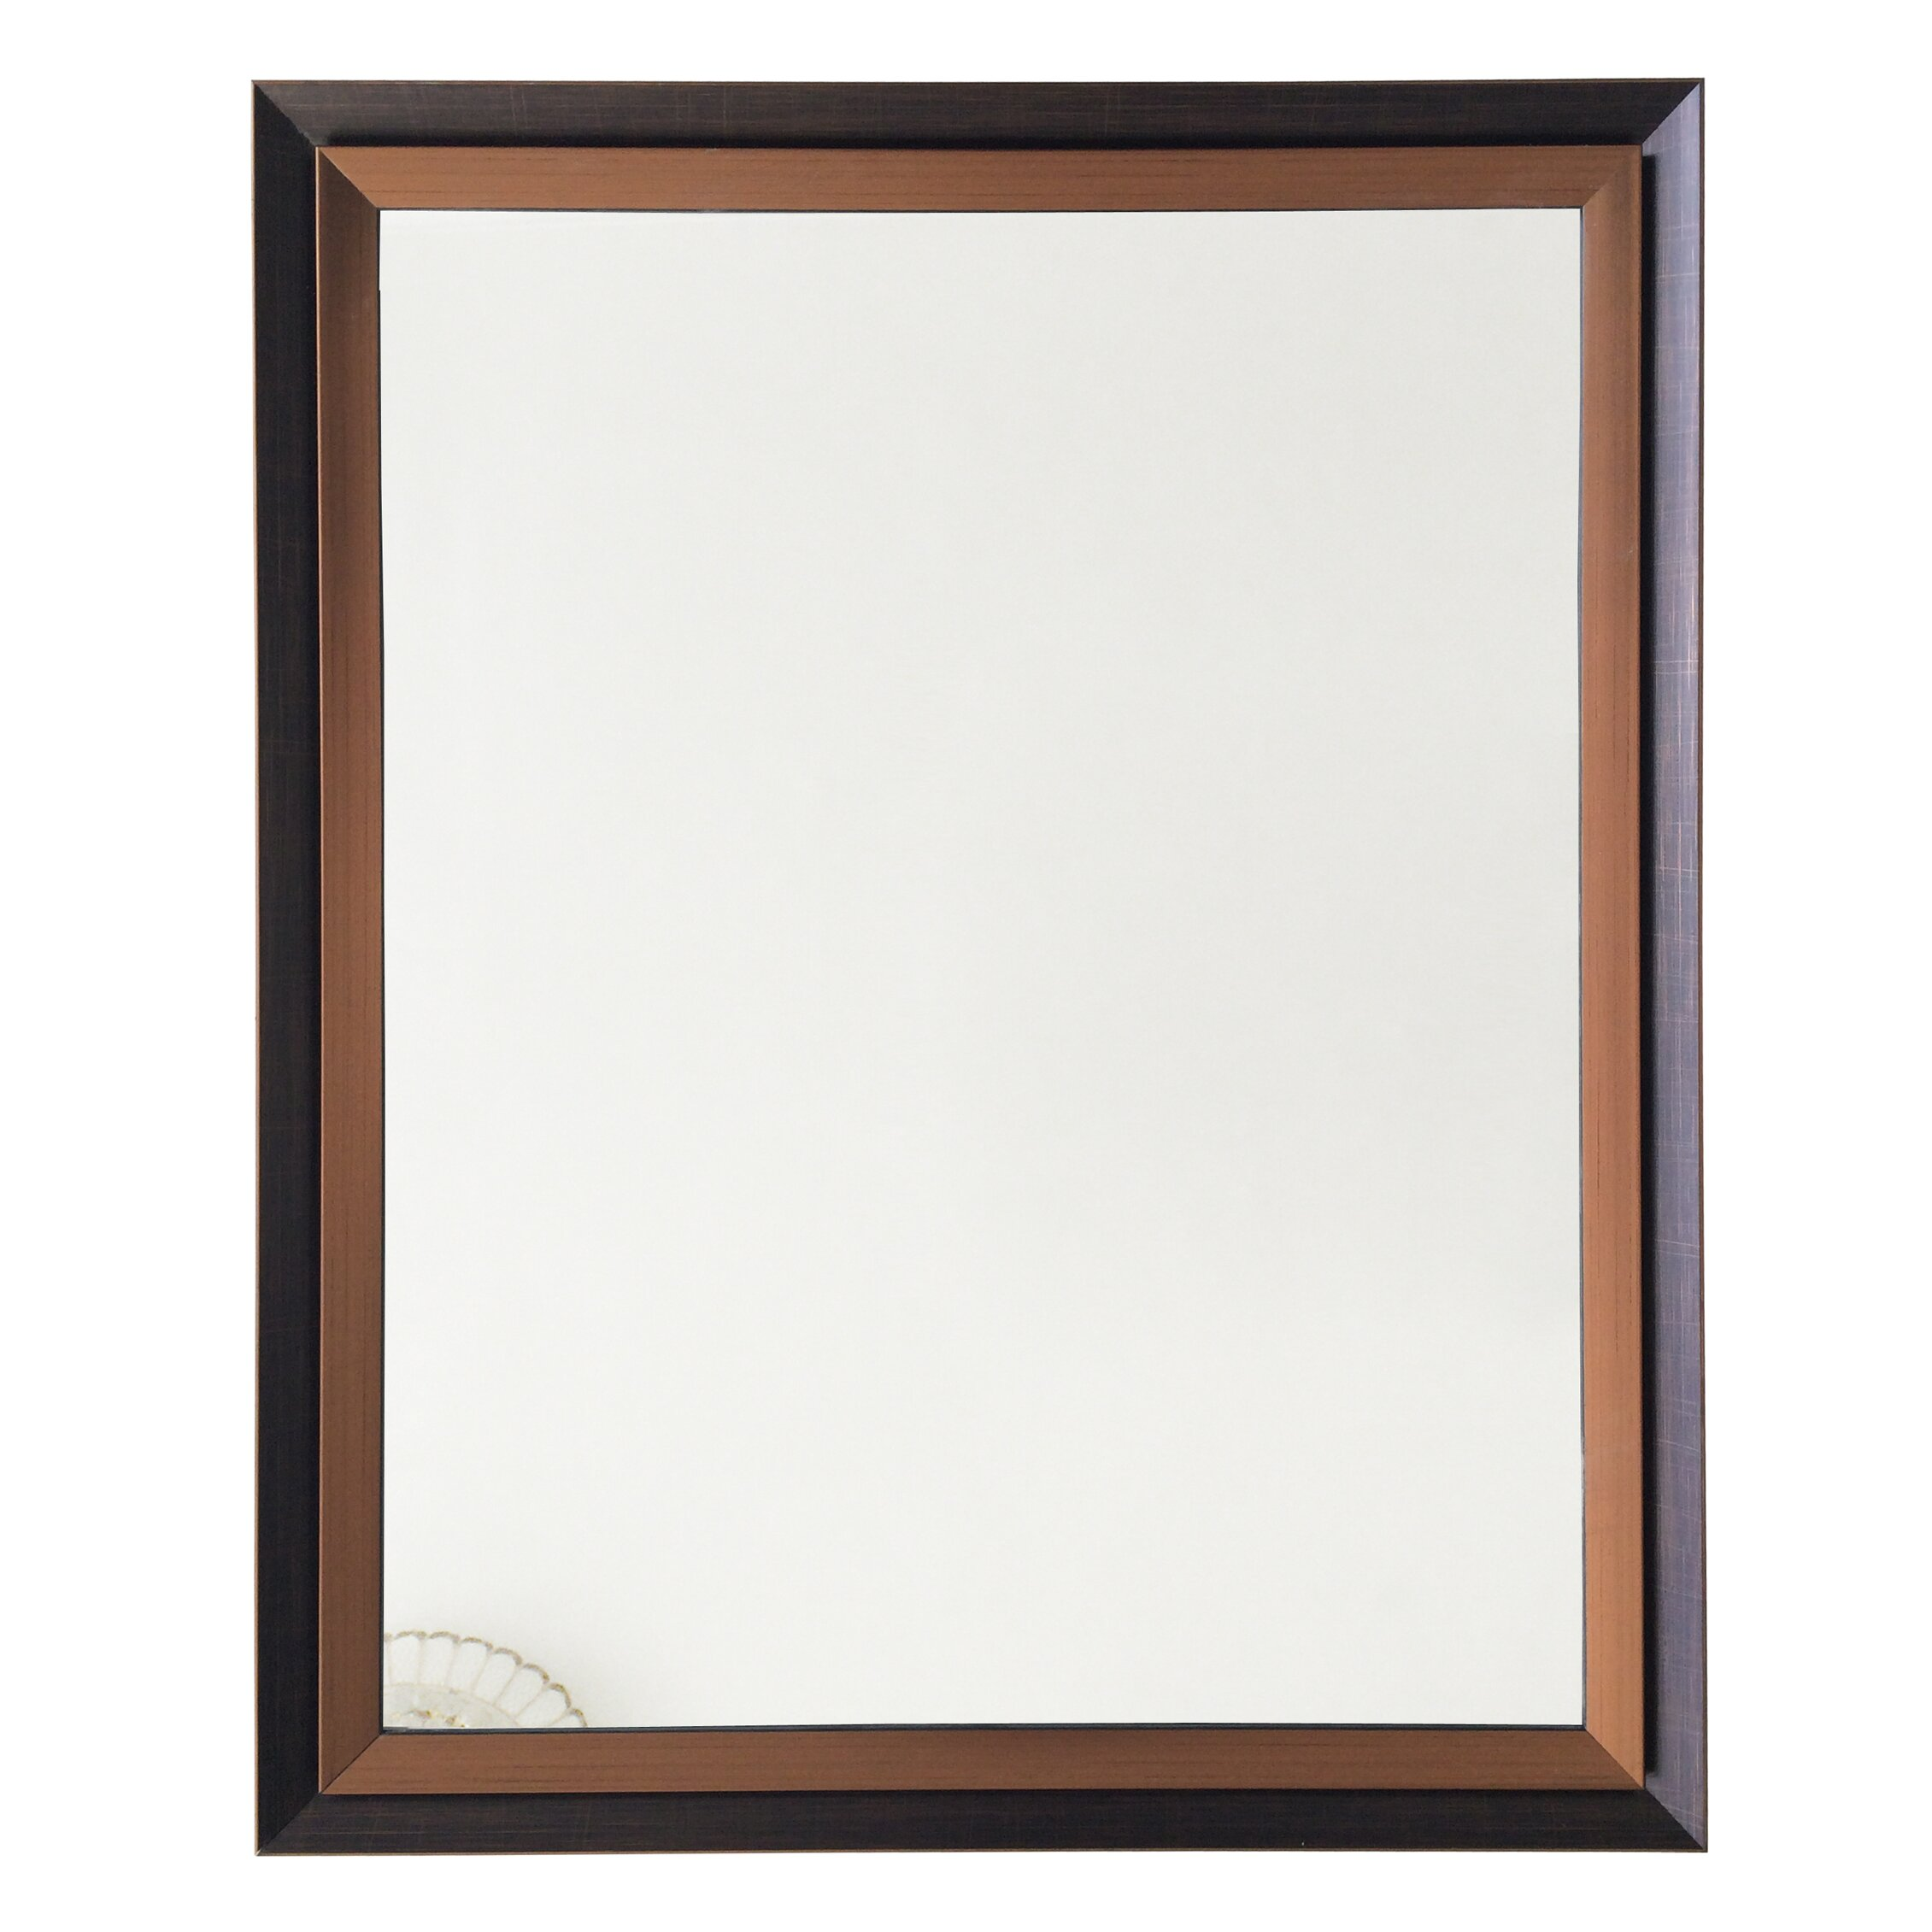 Kingwinhomedecor framed wall mirror reviews wayfair for Mirror wall art